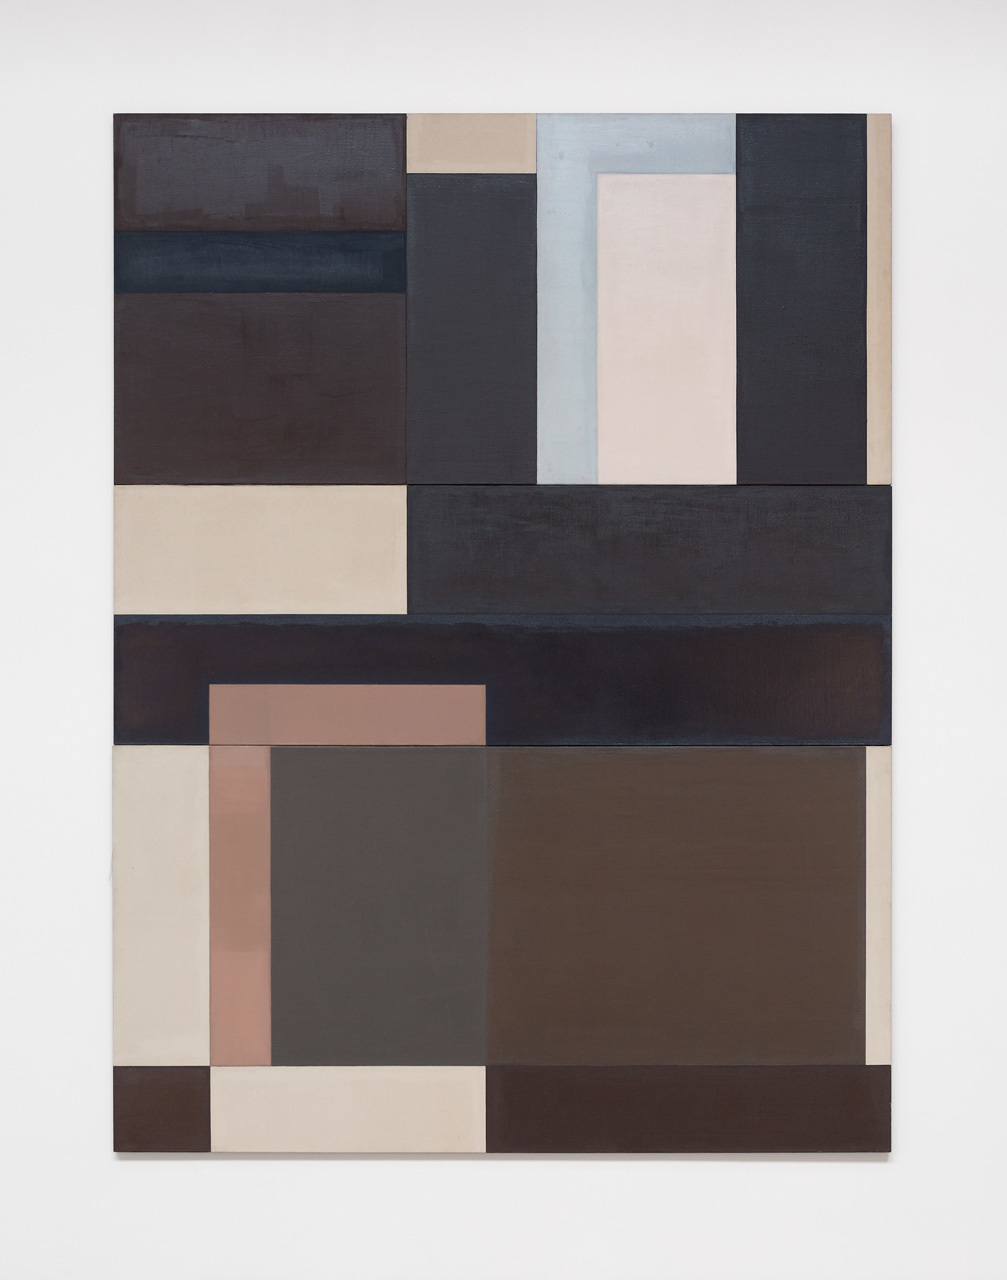 David Novros, Untitled, 1970-71, oil on canvas, 120 x 90 x 1 1/4 inches (courtesy of Paula Cooper Gallery)